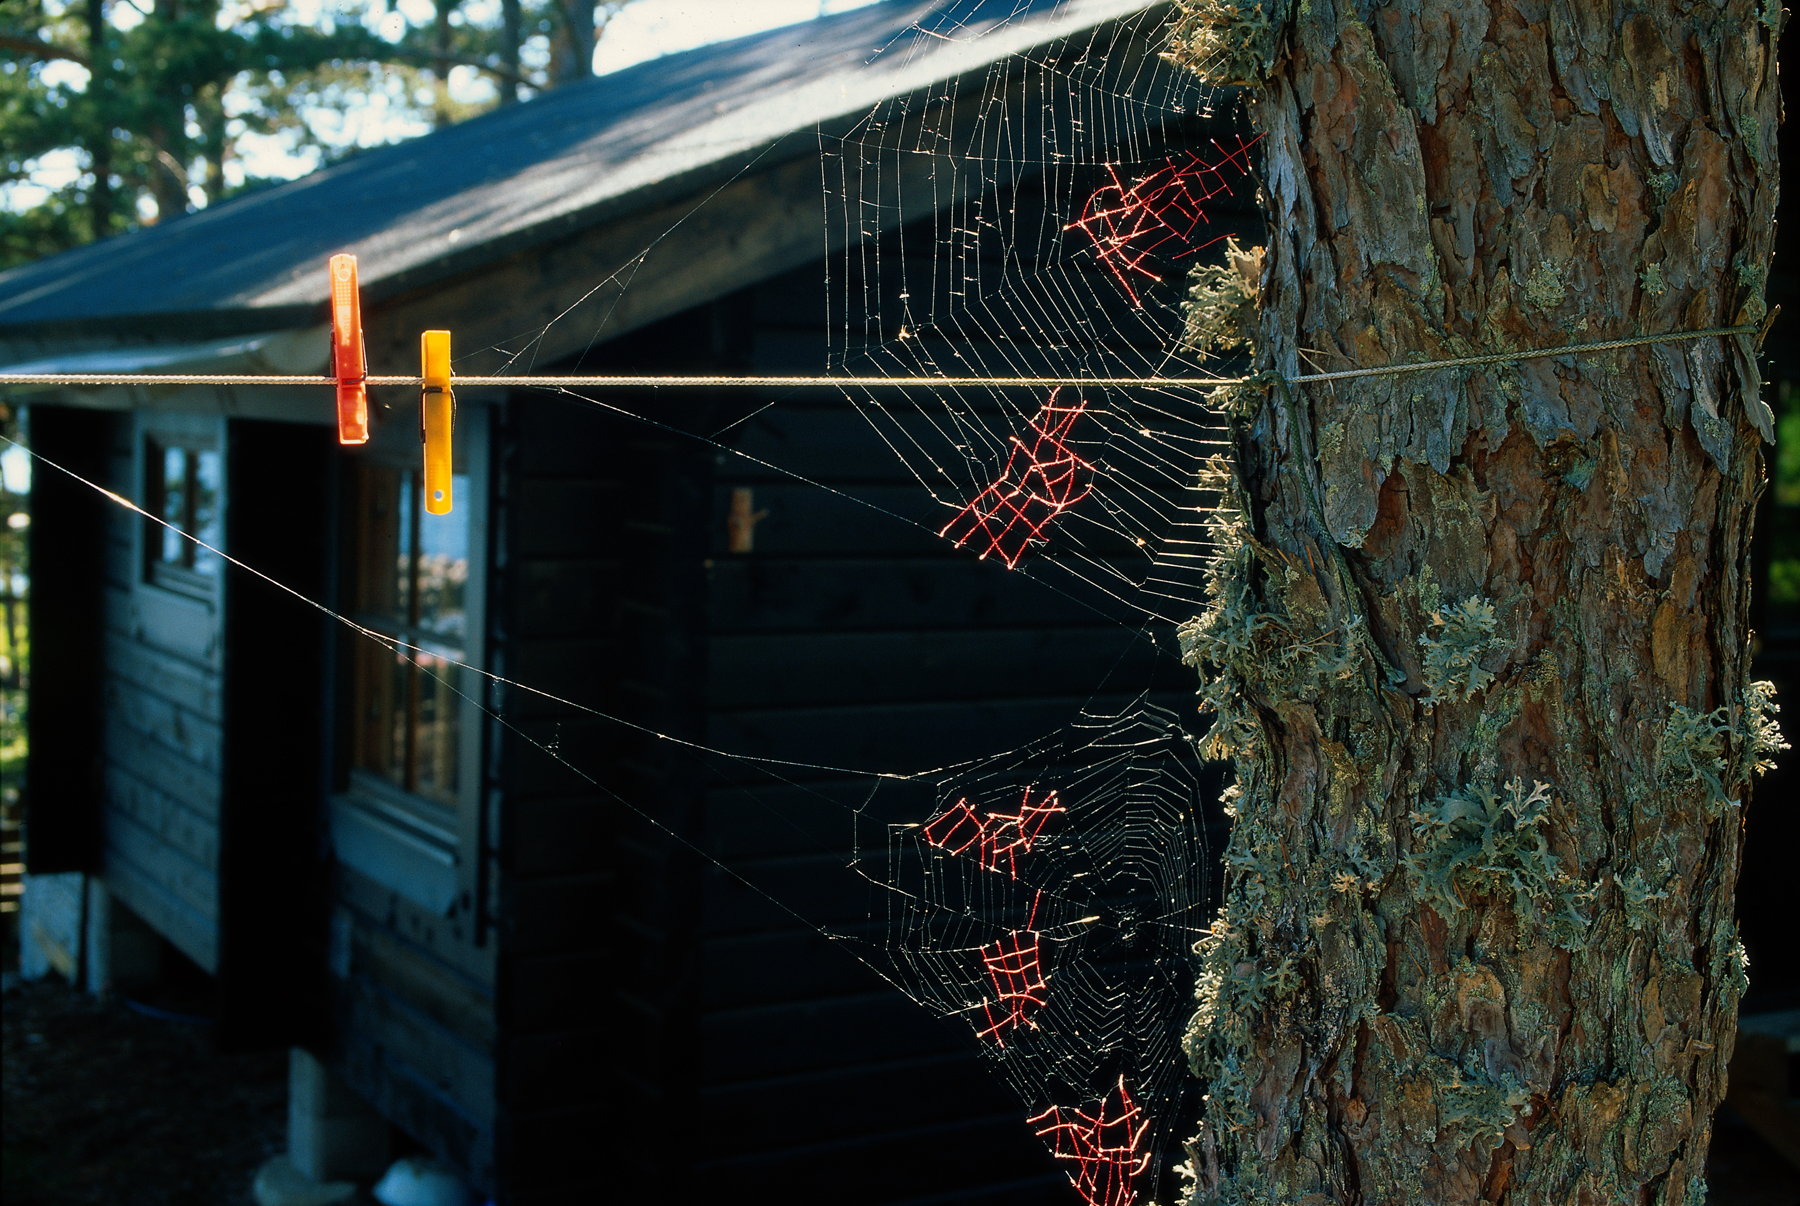 Mended%20Spiderweb%20%2319%20(Laundry%20Line).jpg